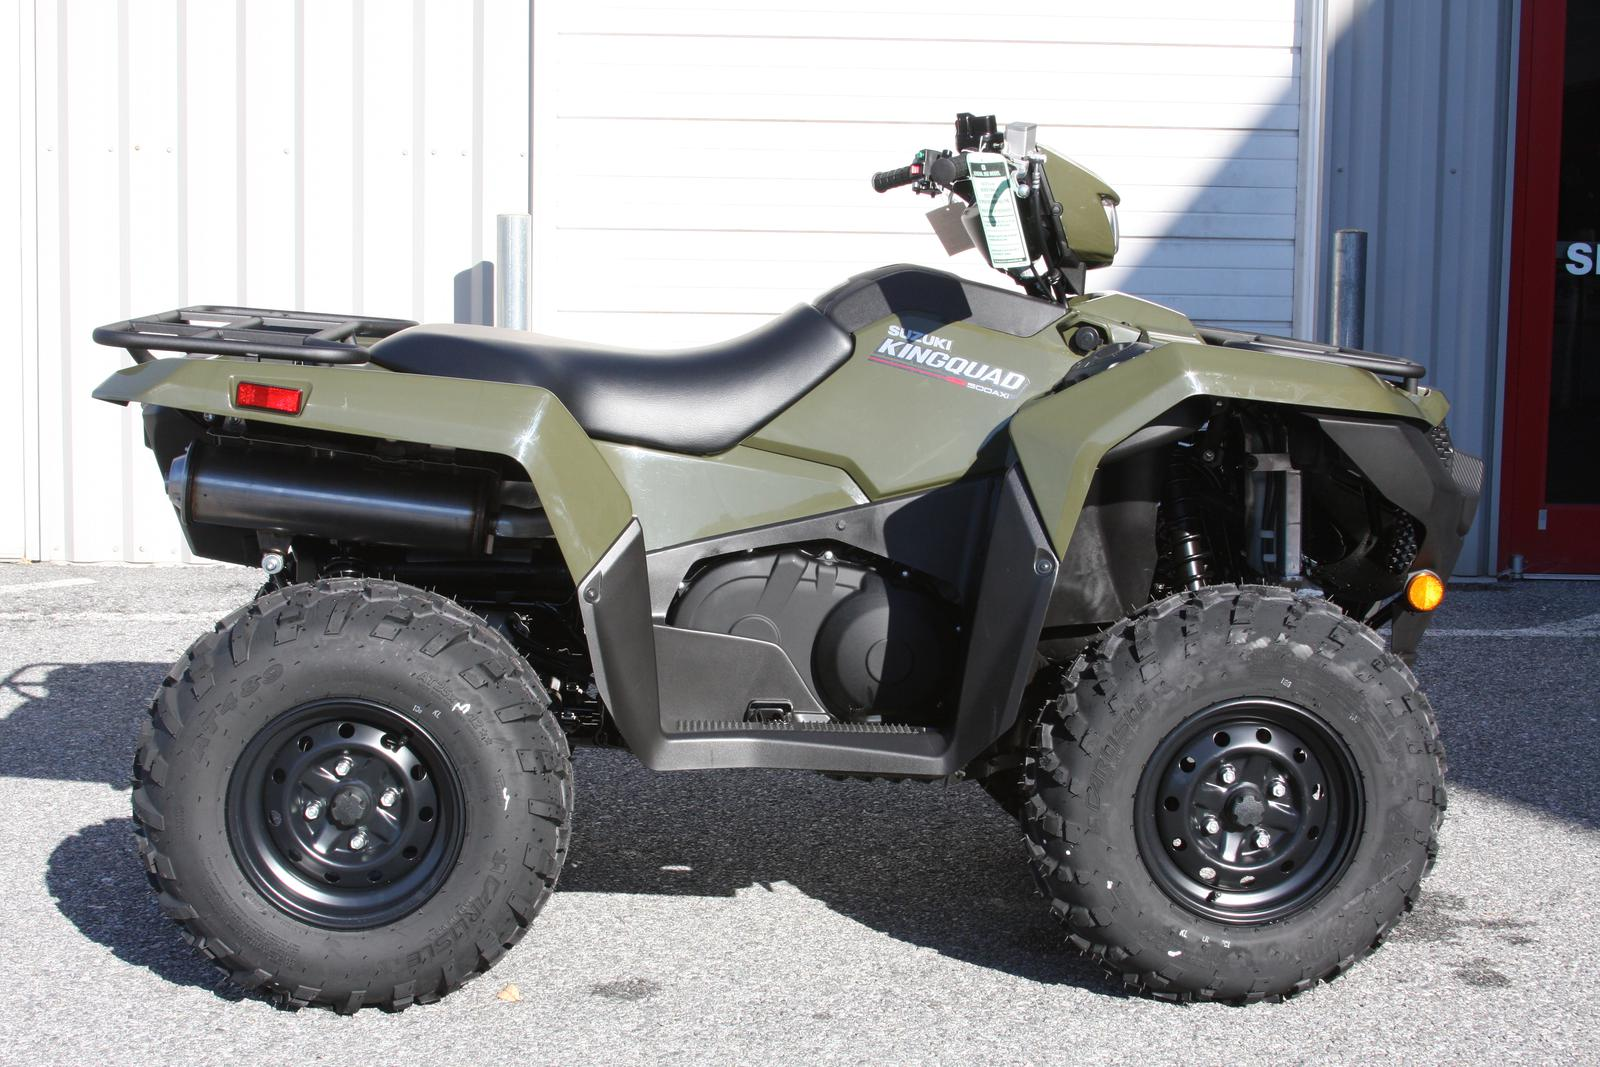 2019 Suzuki KINGQUAD 500AXI for sale in YORK, PA | AMS Action Motorsports  (717) 757-2688